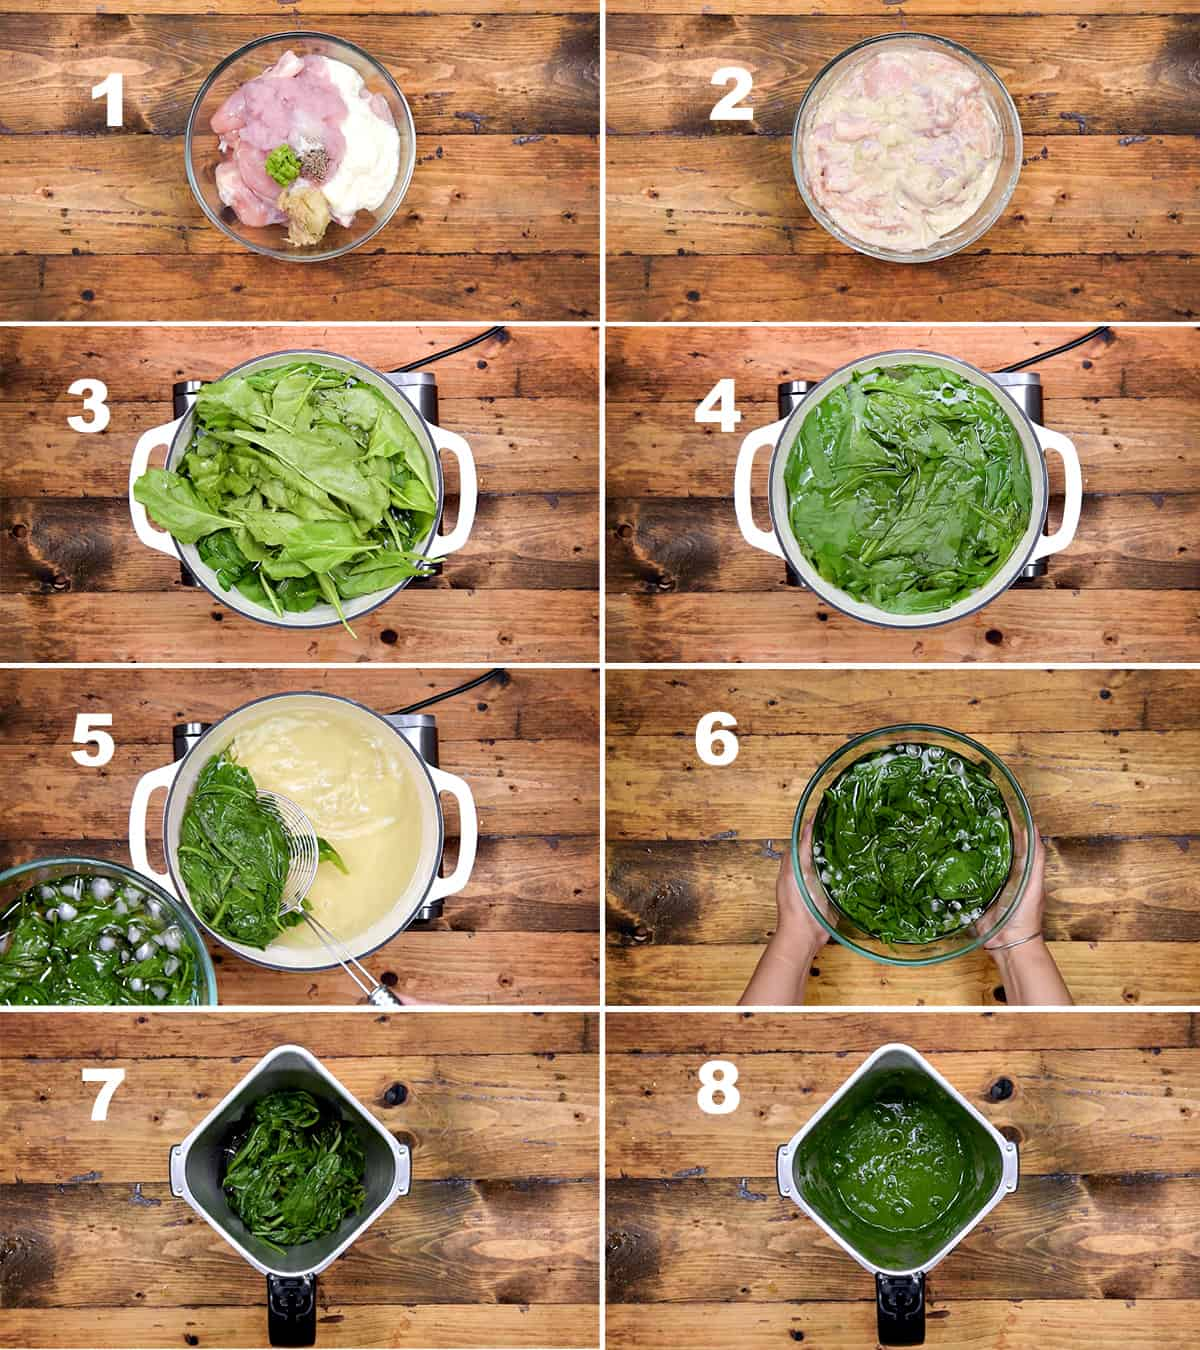 Step by step picture collage showing the chicken marination and spinach blanching.